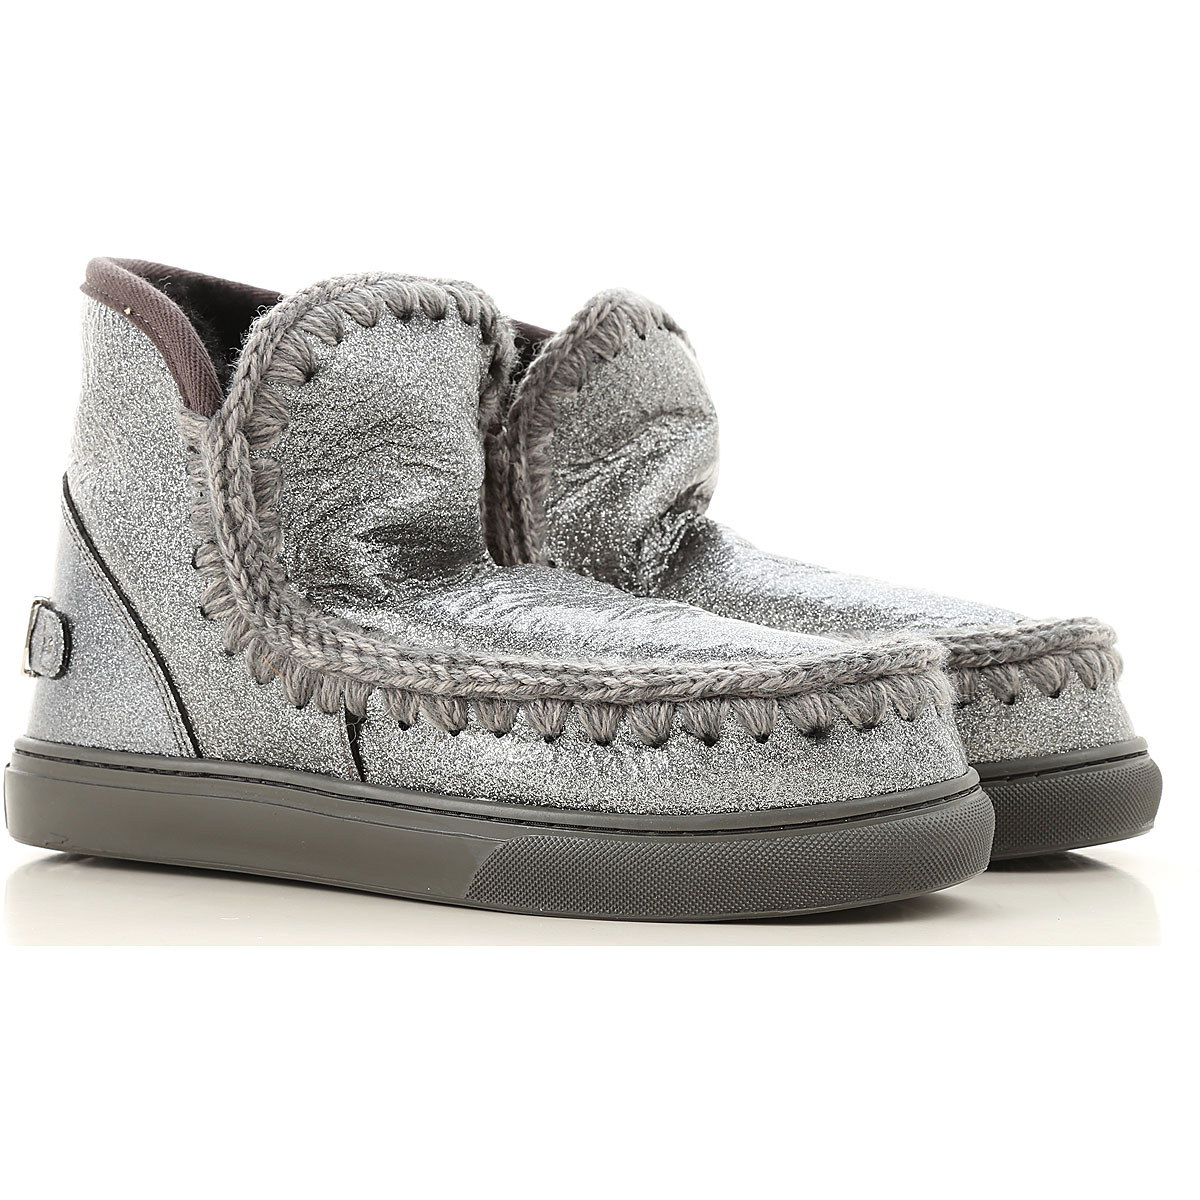 Mou Boots for Women, Booties On Sale, Silver, Leather, 2019, EUR 37 - UK 4 - USA 6.5 EUR 38 - UK 5 - USA 7.5 EUR 39 - UK 6 - USA 8.5